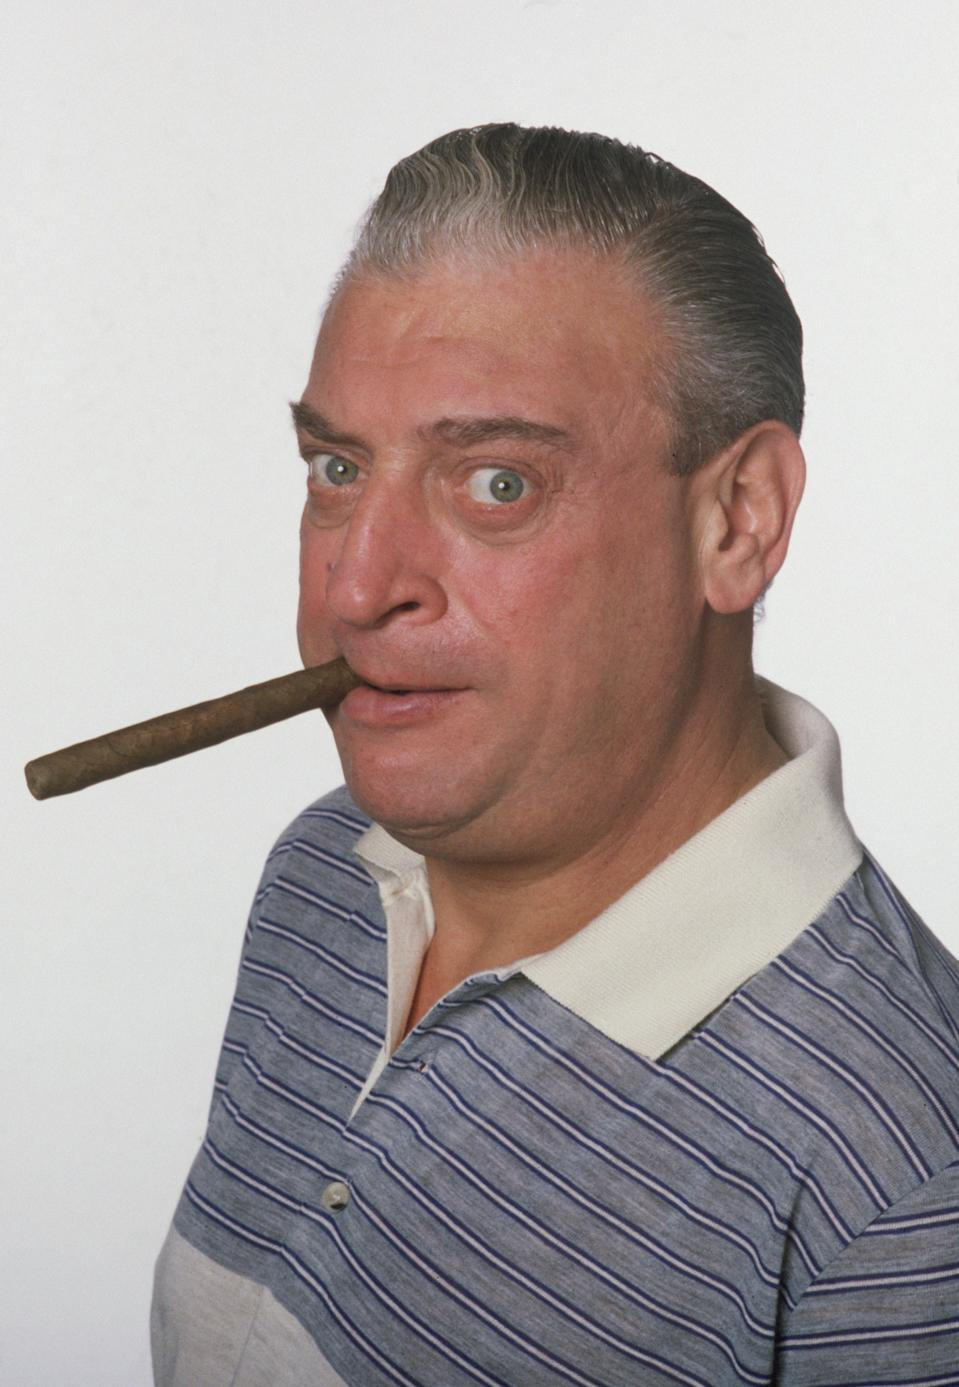 American actor and comedian Rodney Dangerfield (1921 - 2004) as he appears in Caddyshack, directed by Harold Ramis, 1980. (Photo by Hulton Archive/Getty Images)